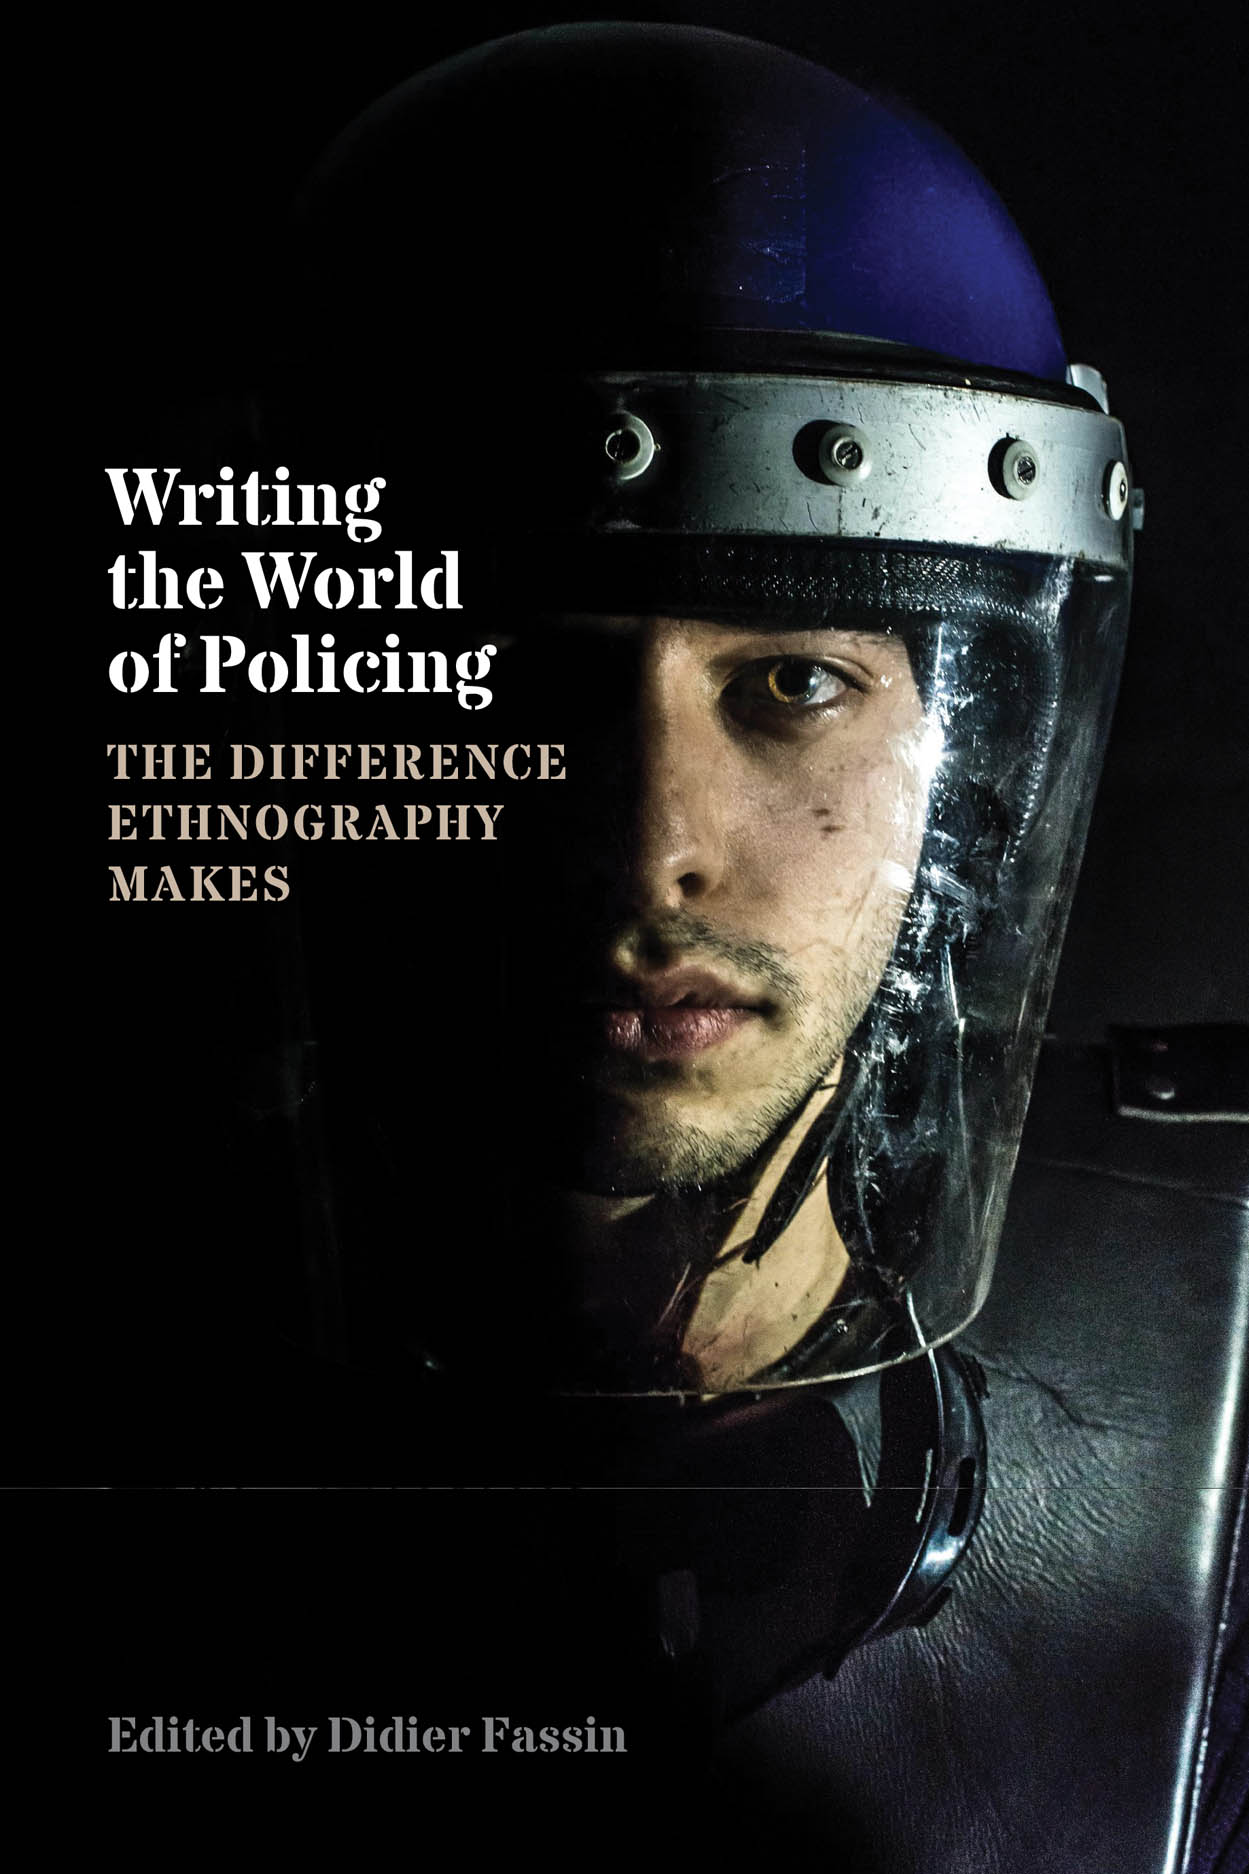 Writing the World of Policing: The Difference Ethnography Makes